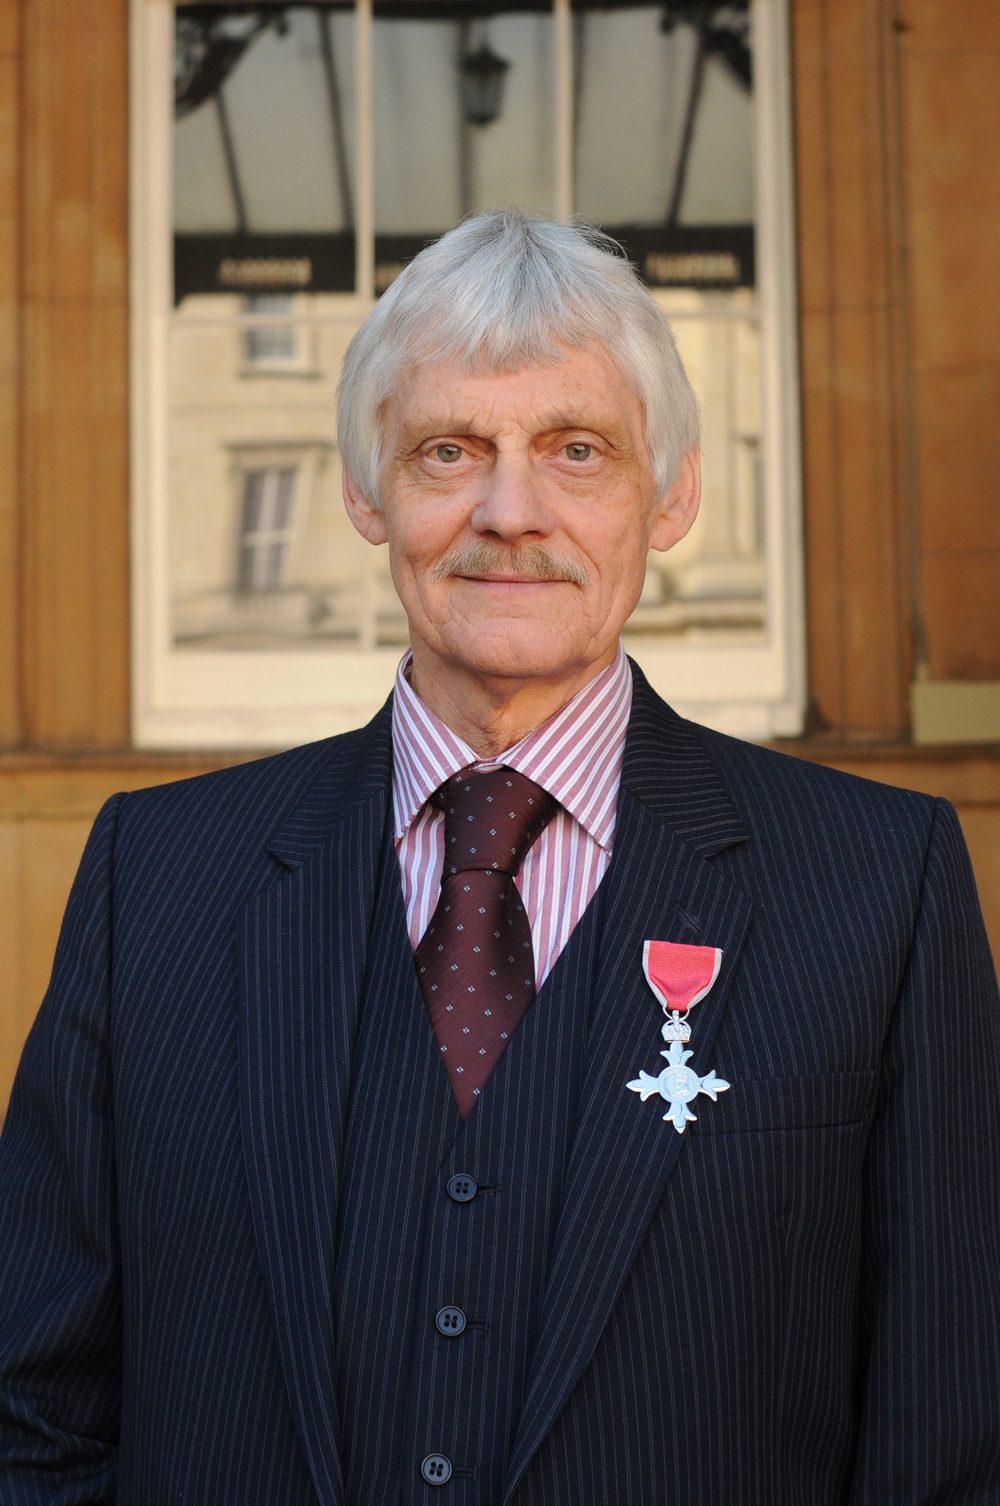 Dr John Ashdown-Hill received his MBE for services to historical research and the human indentification of Richard III Picture date: Friday 9 October 2015. LOCATION: Buckingham Palace. Copyright: PA Photos NOT FOR PUBLICATION WITHOUT WRITTEN CONSENT OF PA PHOTOS : 020 7963 7305.